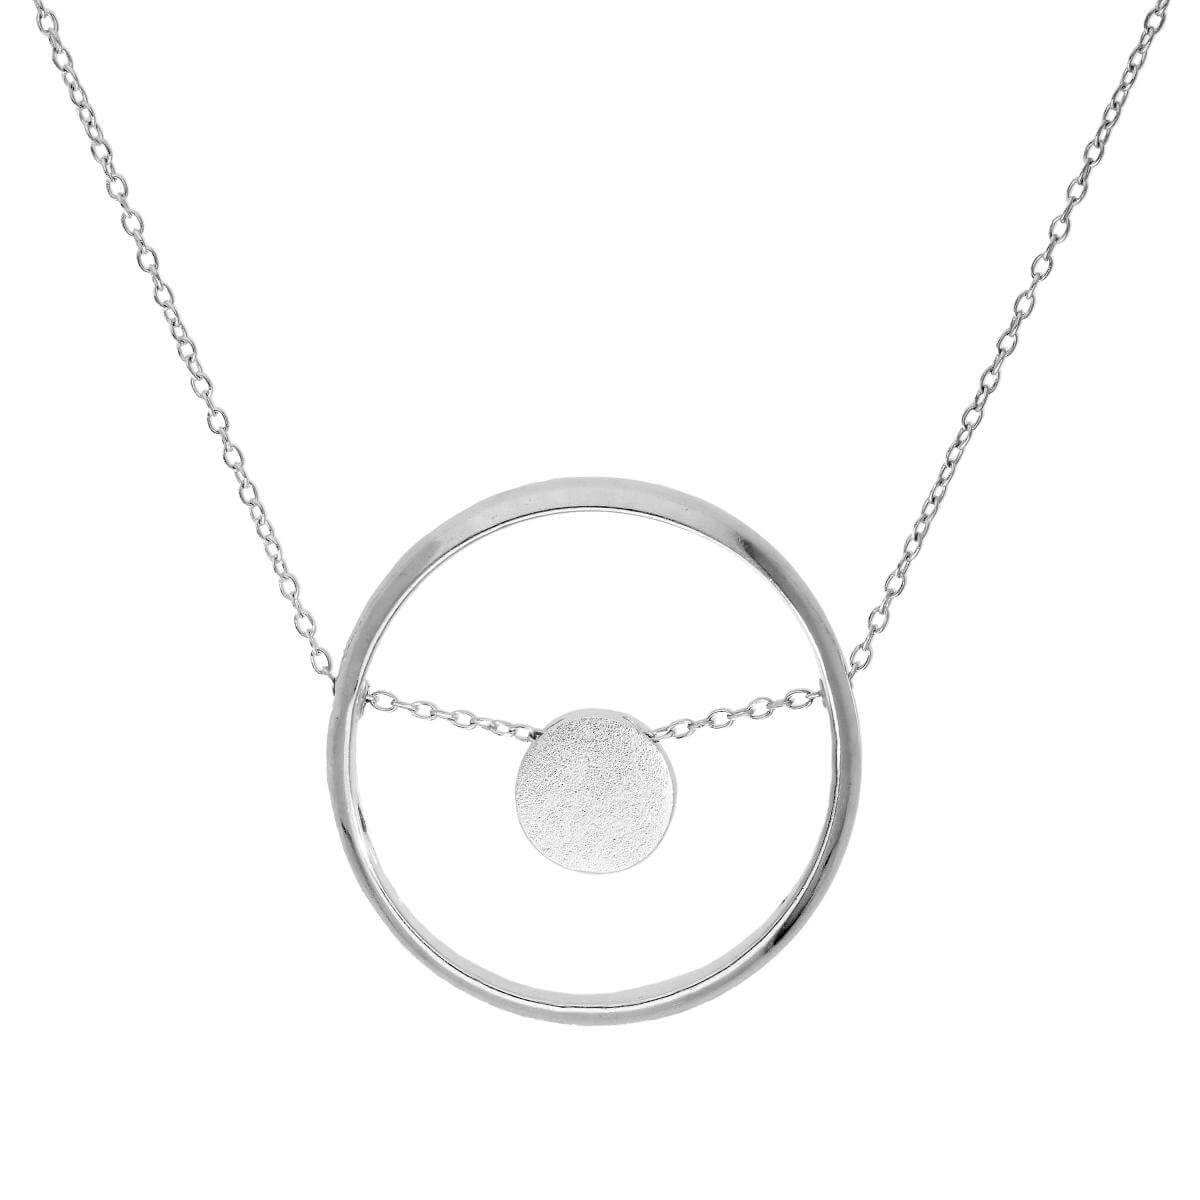 Sterling Silver Karma Moments Bead & Ring Pendant on Belcher Chain 16-22 Inches